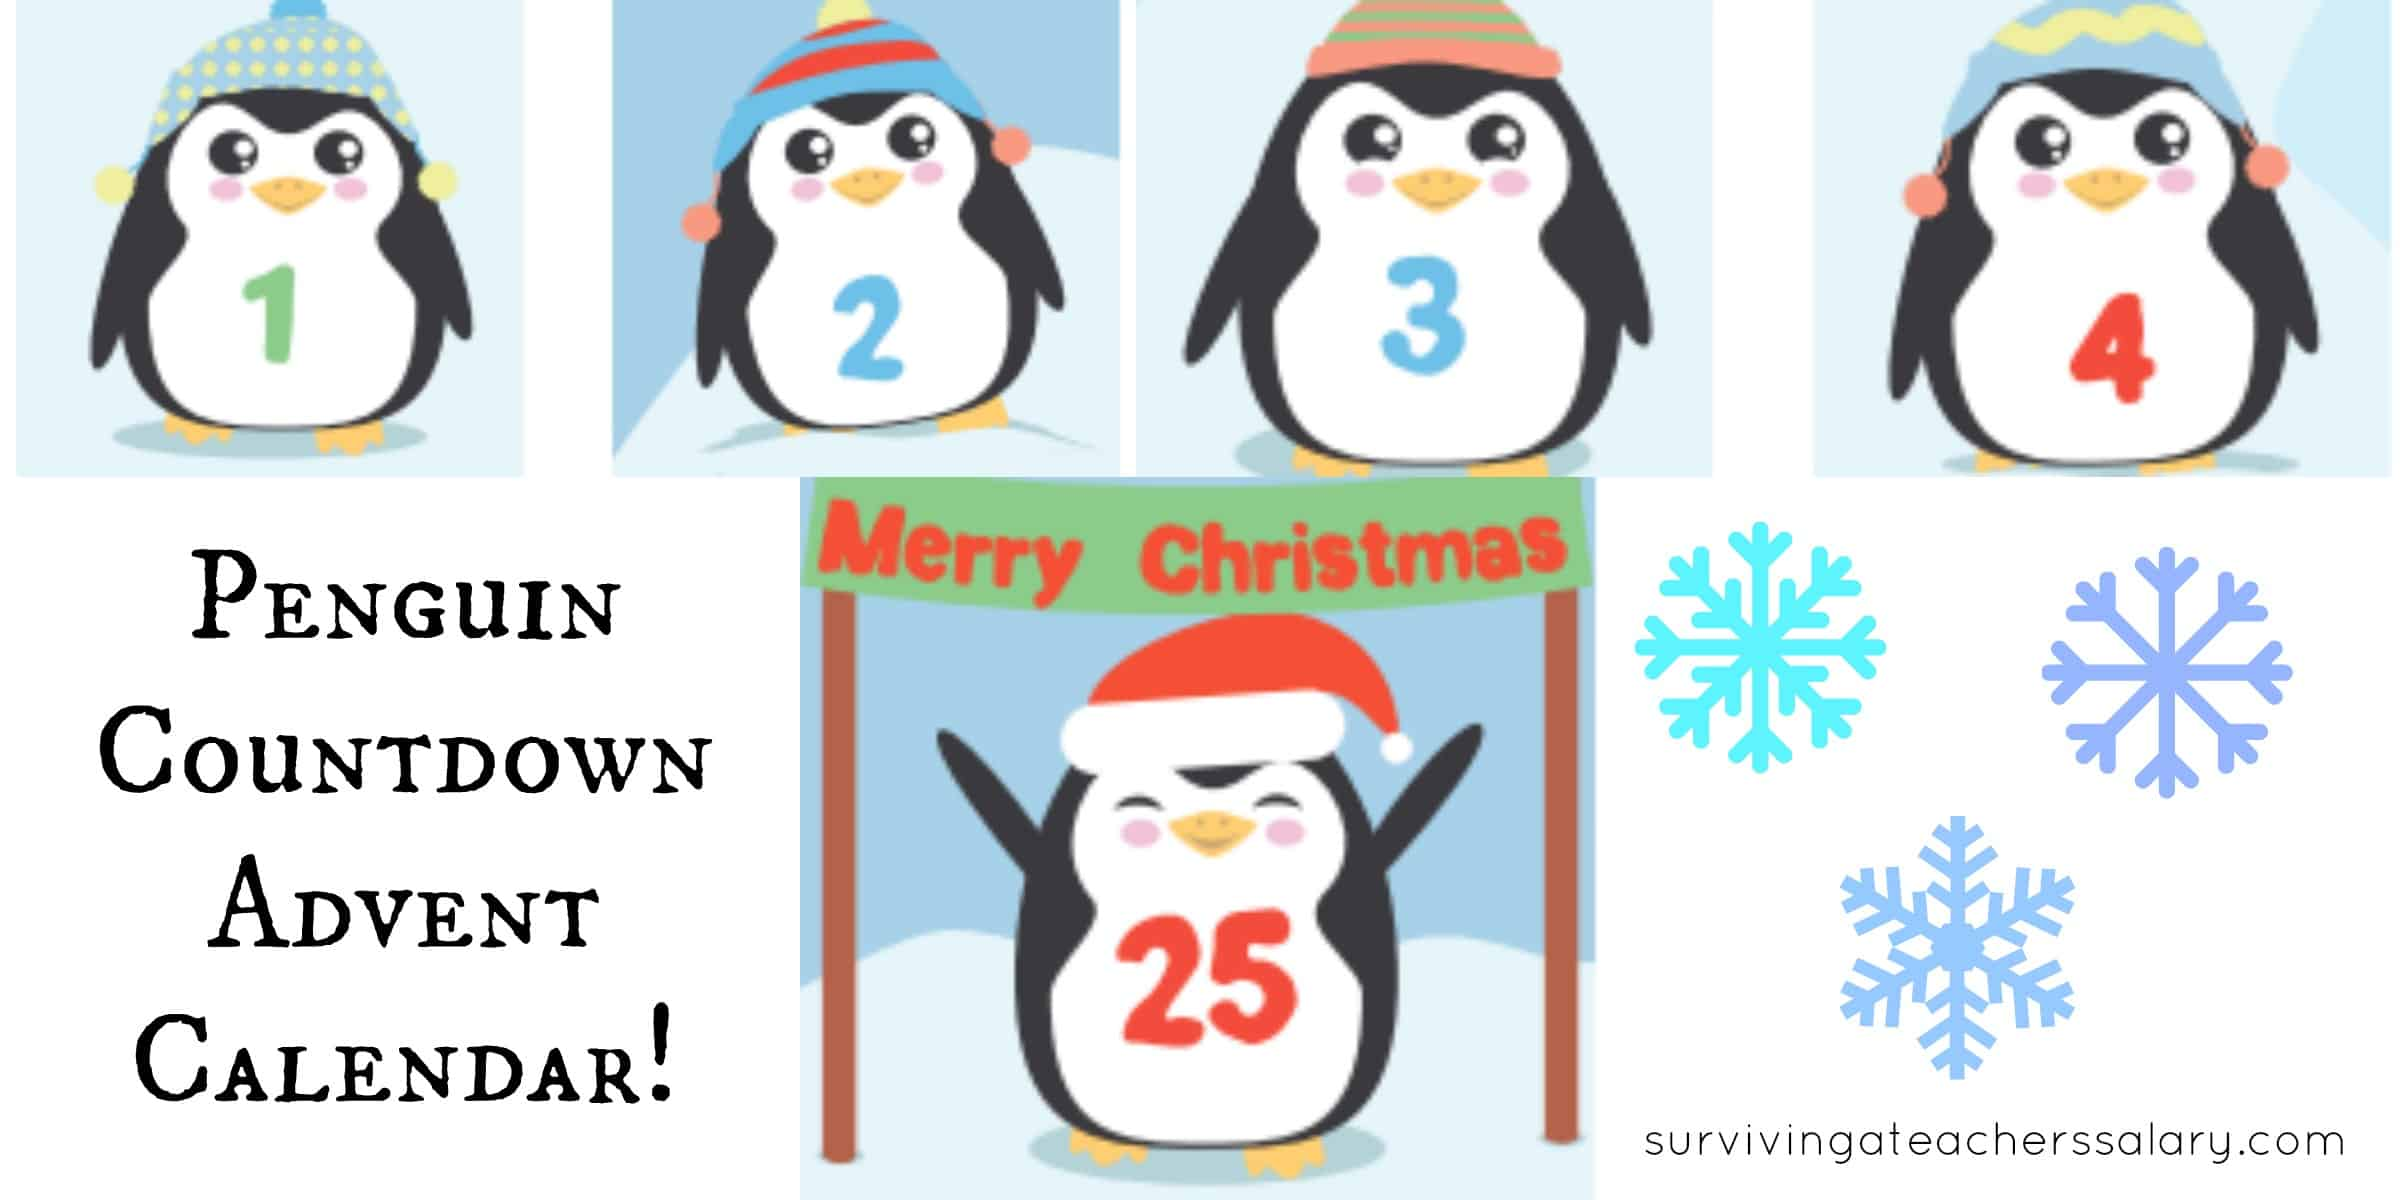 image regarding Penguin Printable identified as Absolutely free Penguin Printable Arrival Calendar: Little ones Countdown towards